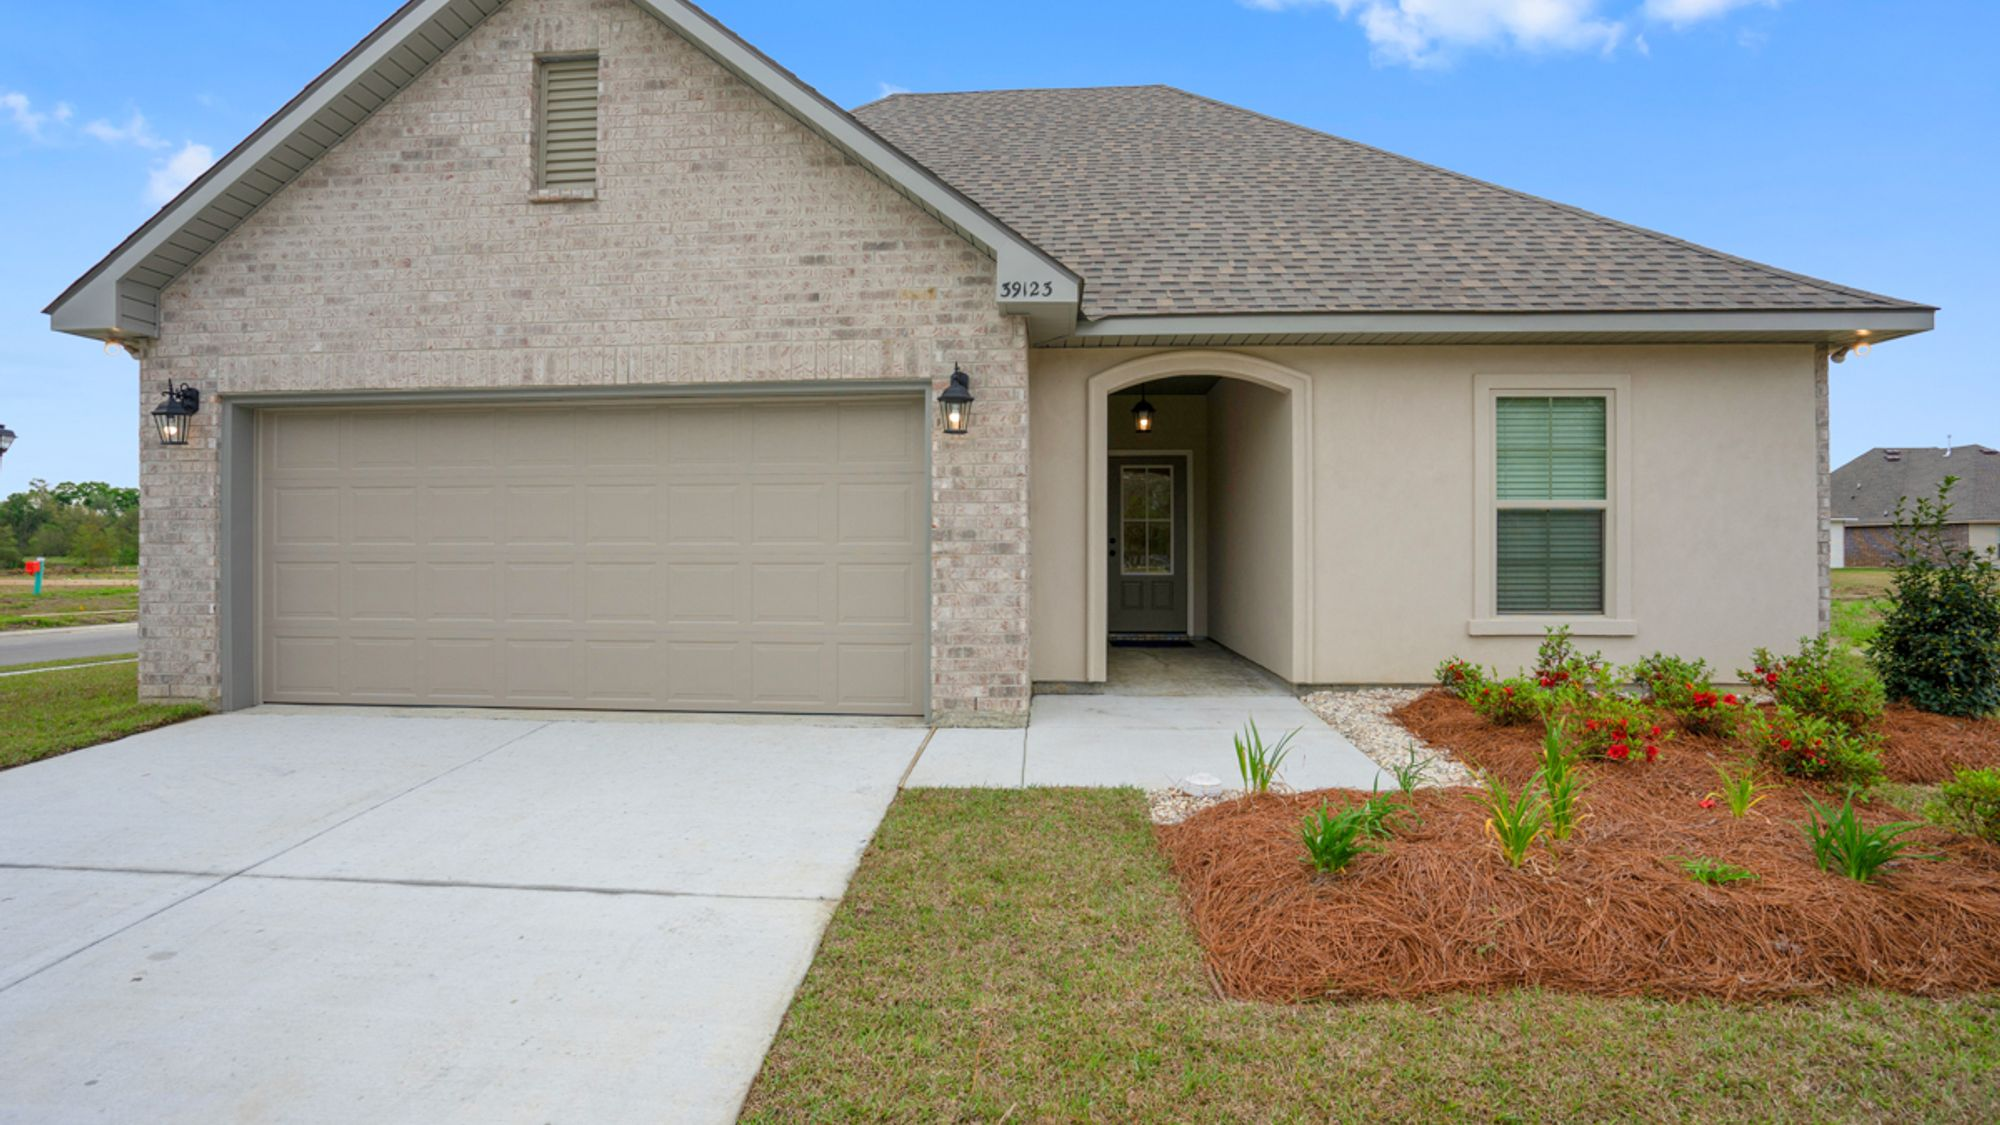 Brookstone Community - DSLD Homes - Prarieville, LA - Grand Oaks Model Home